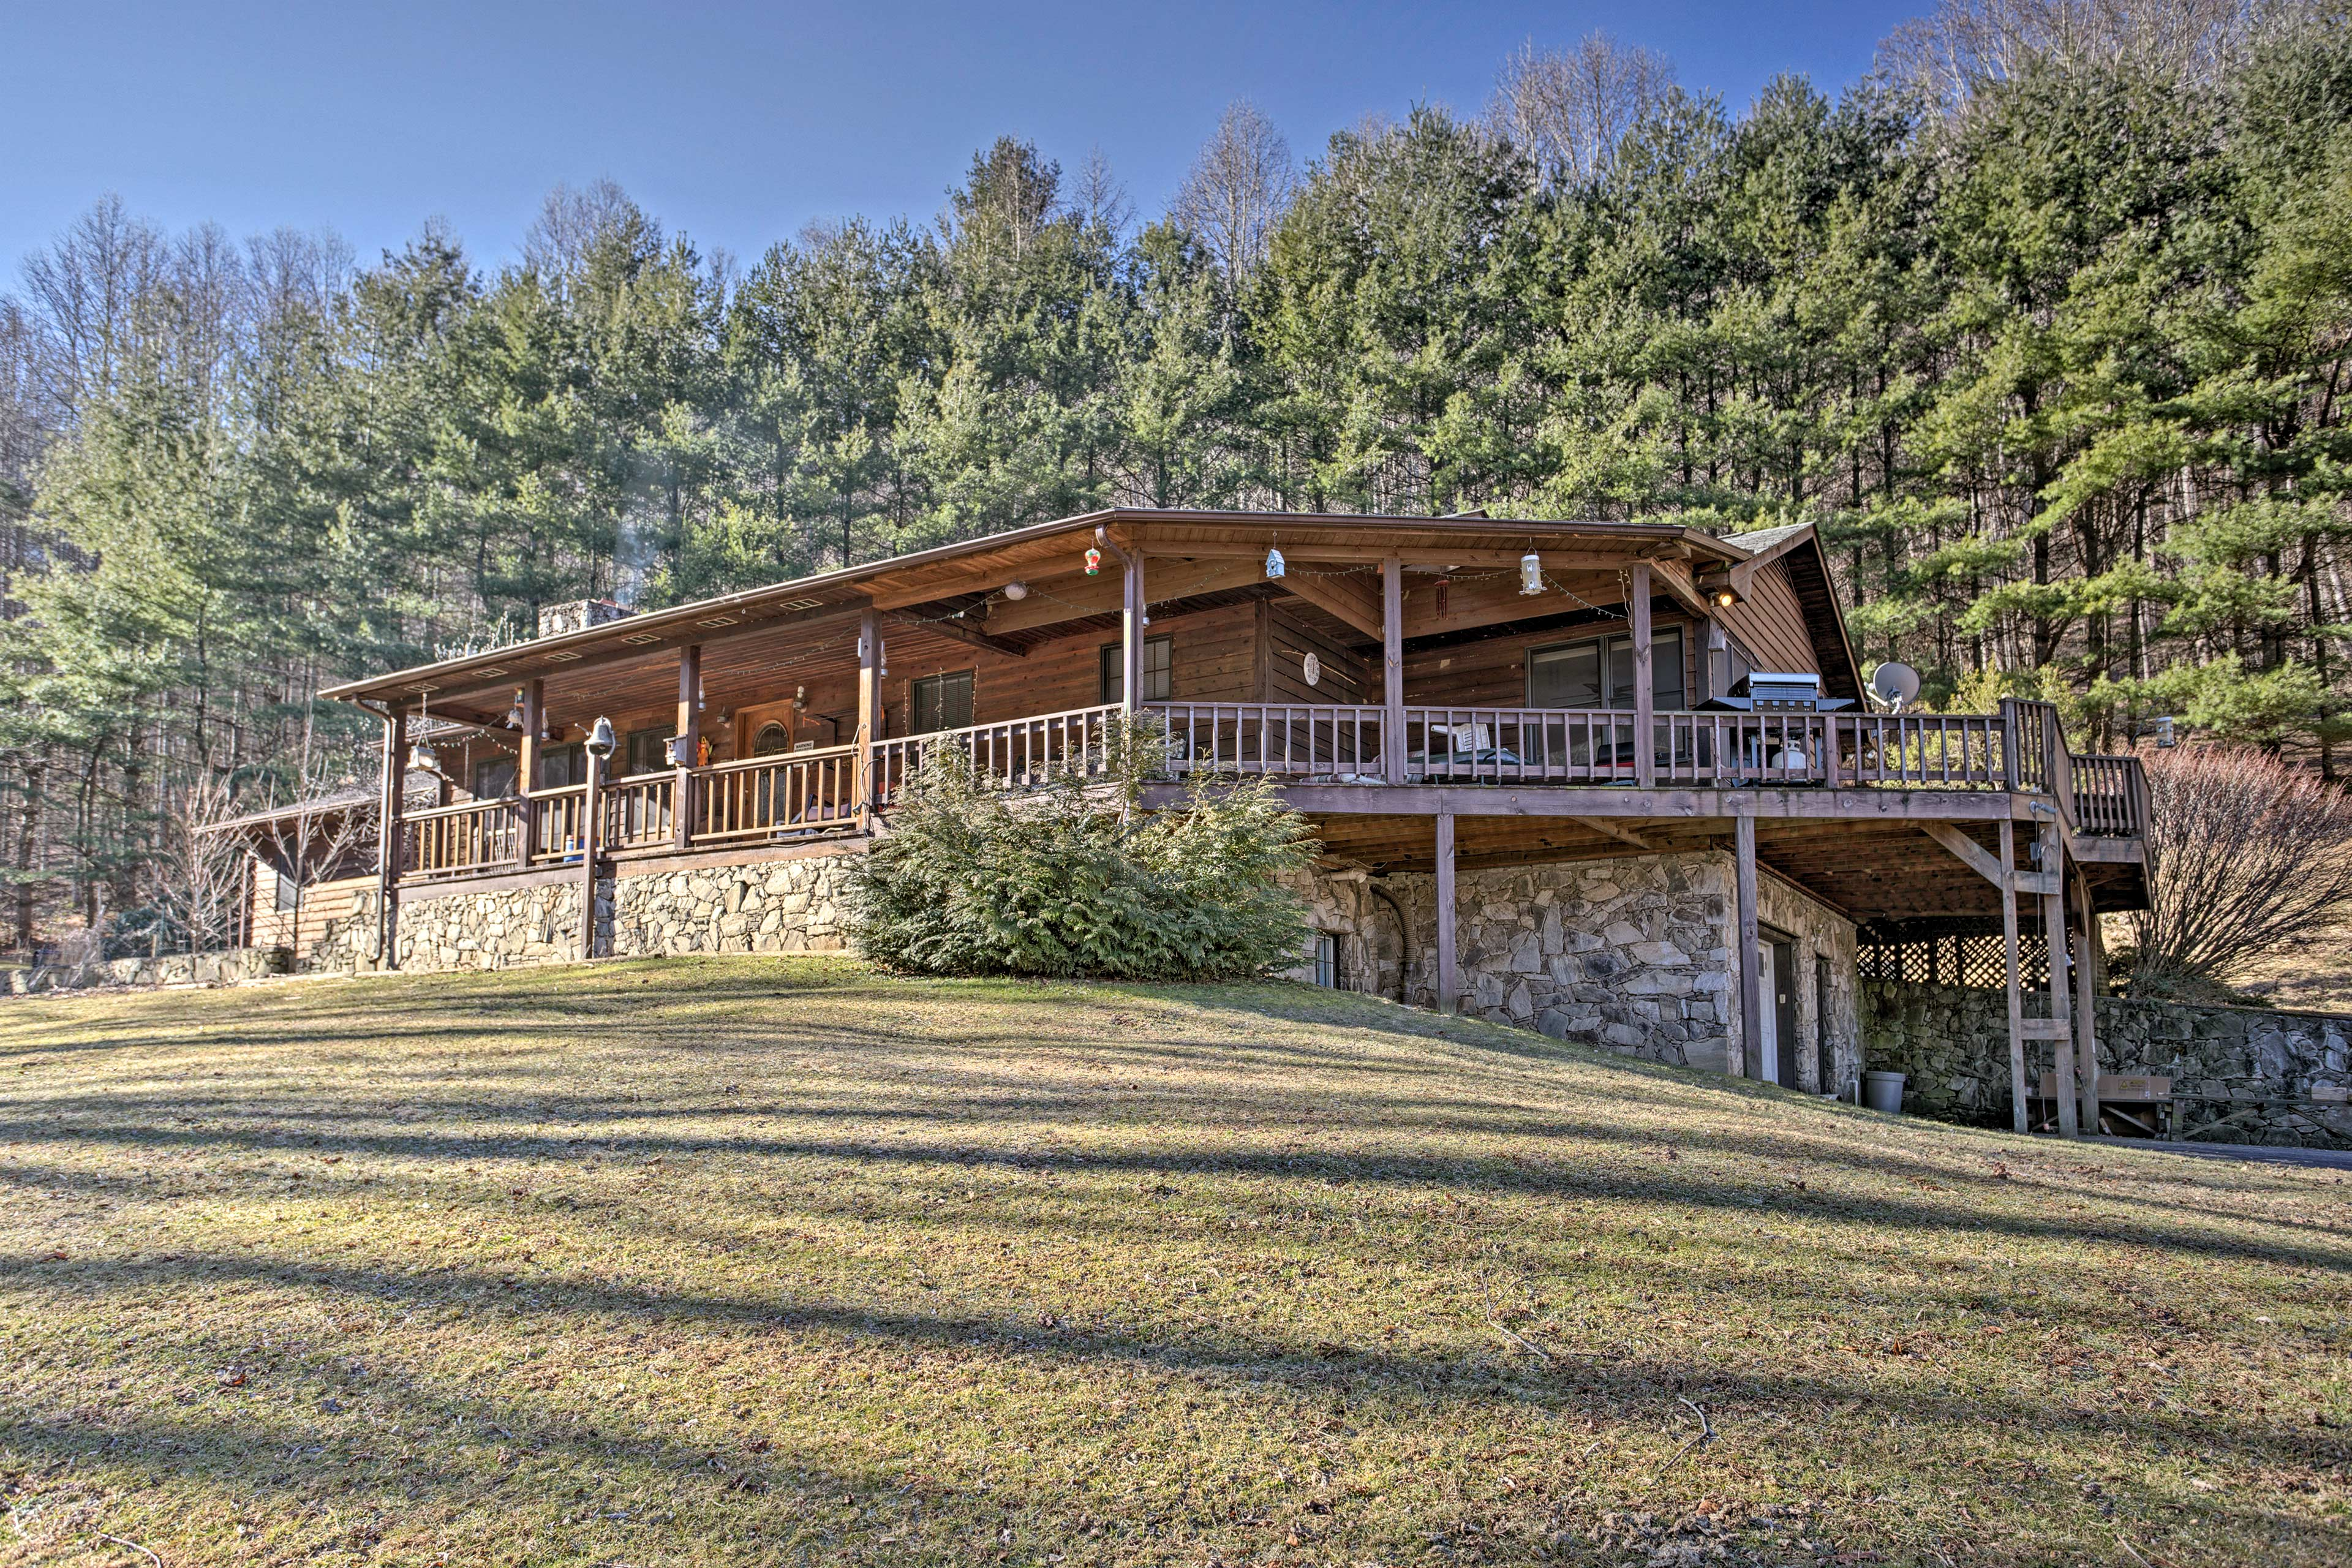 Escape to Waynesville and stay at this vacation rental cabin.